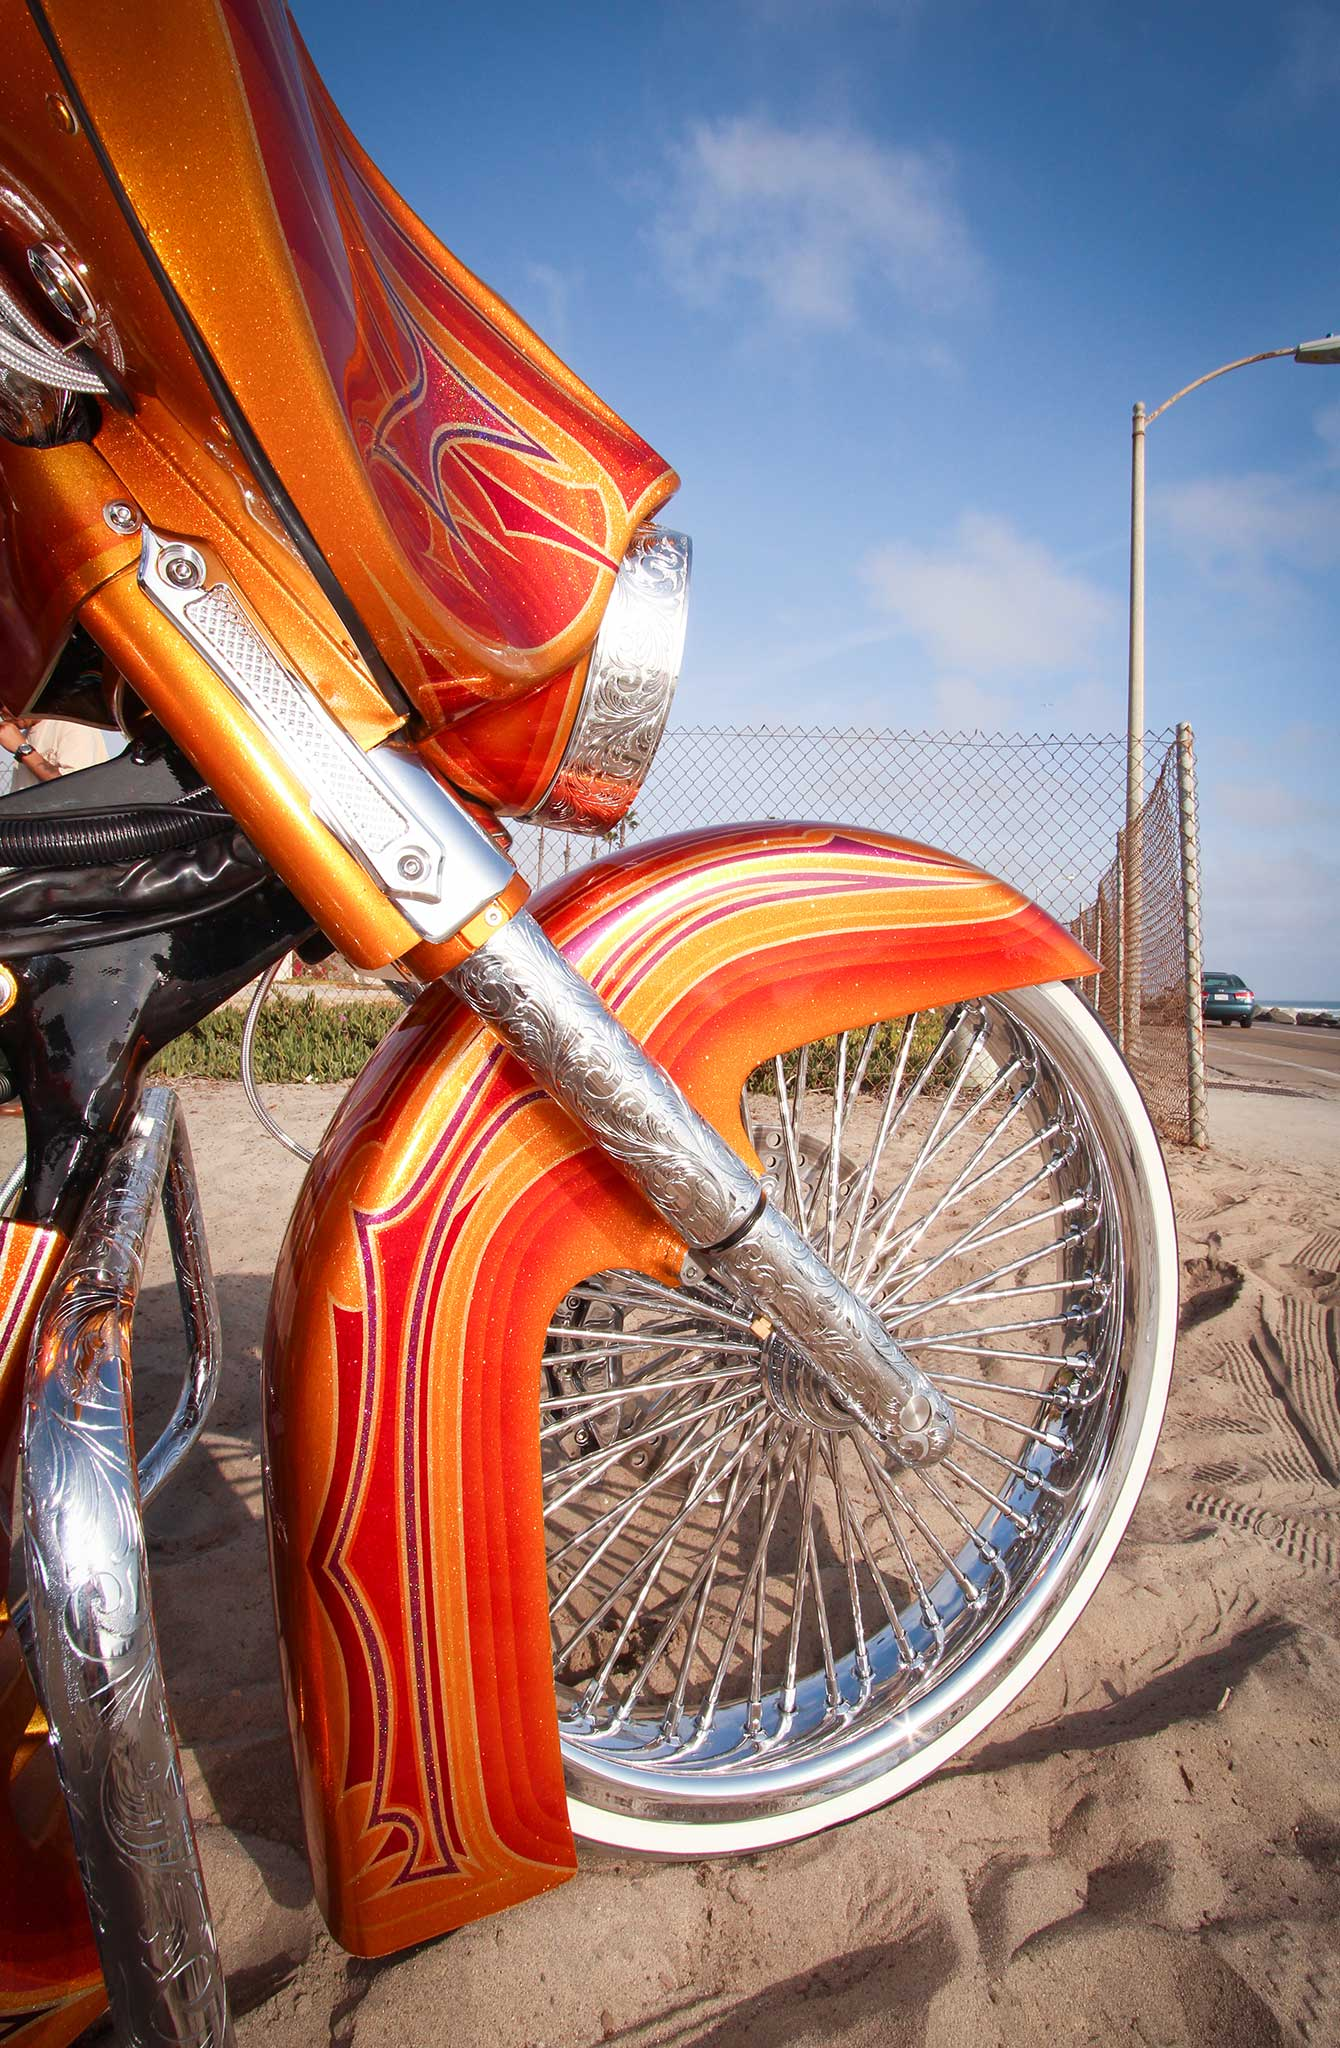 Riding pic | Harley davidson vicla chicano cholos | Pinterest